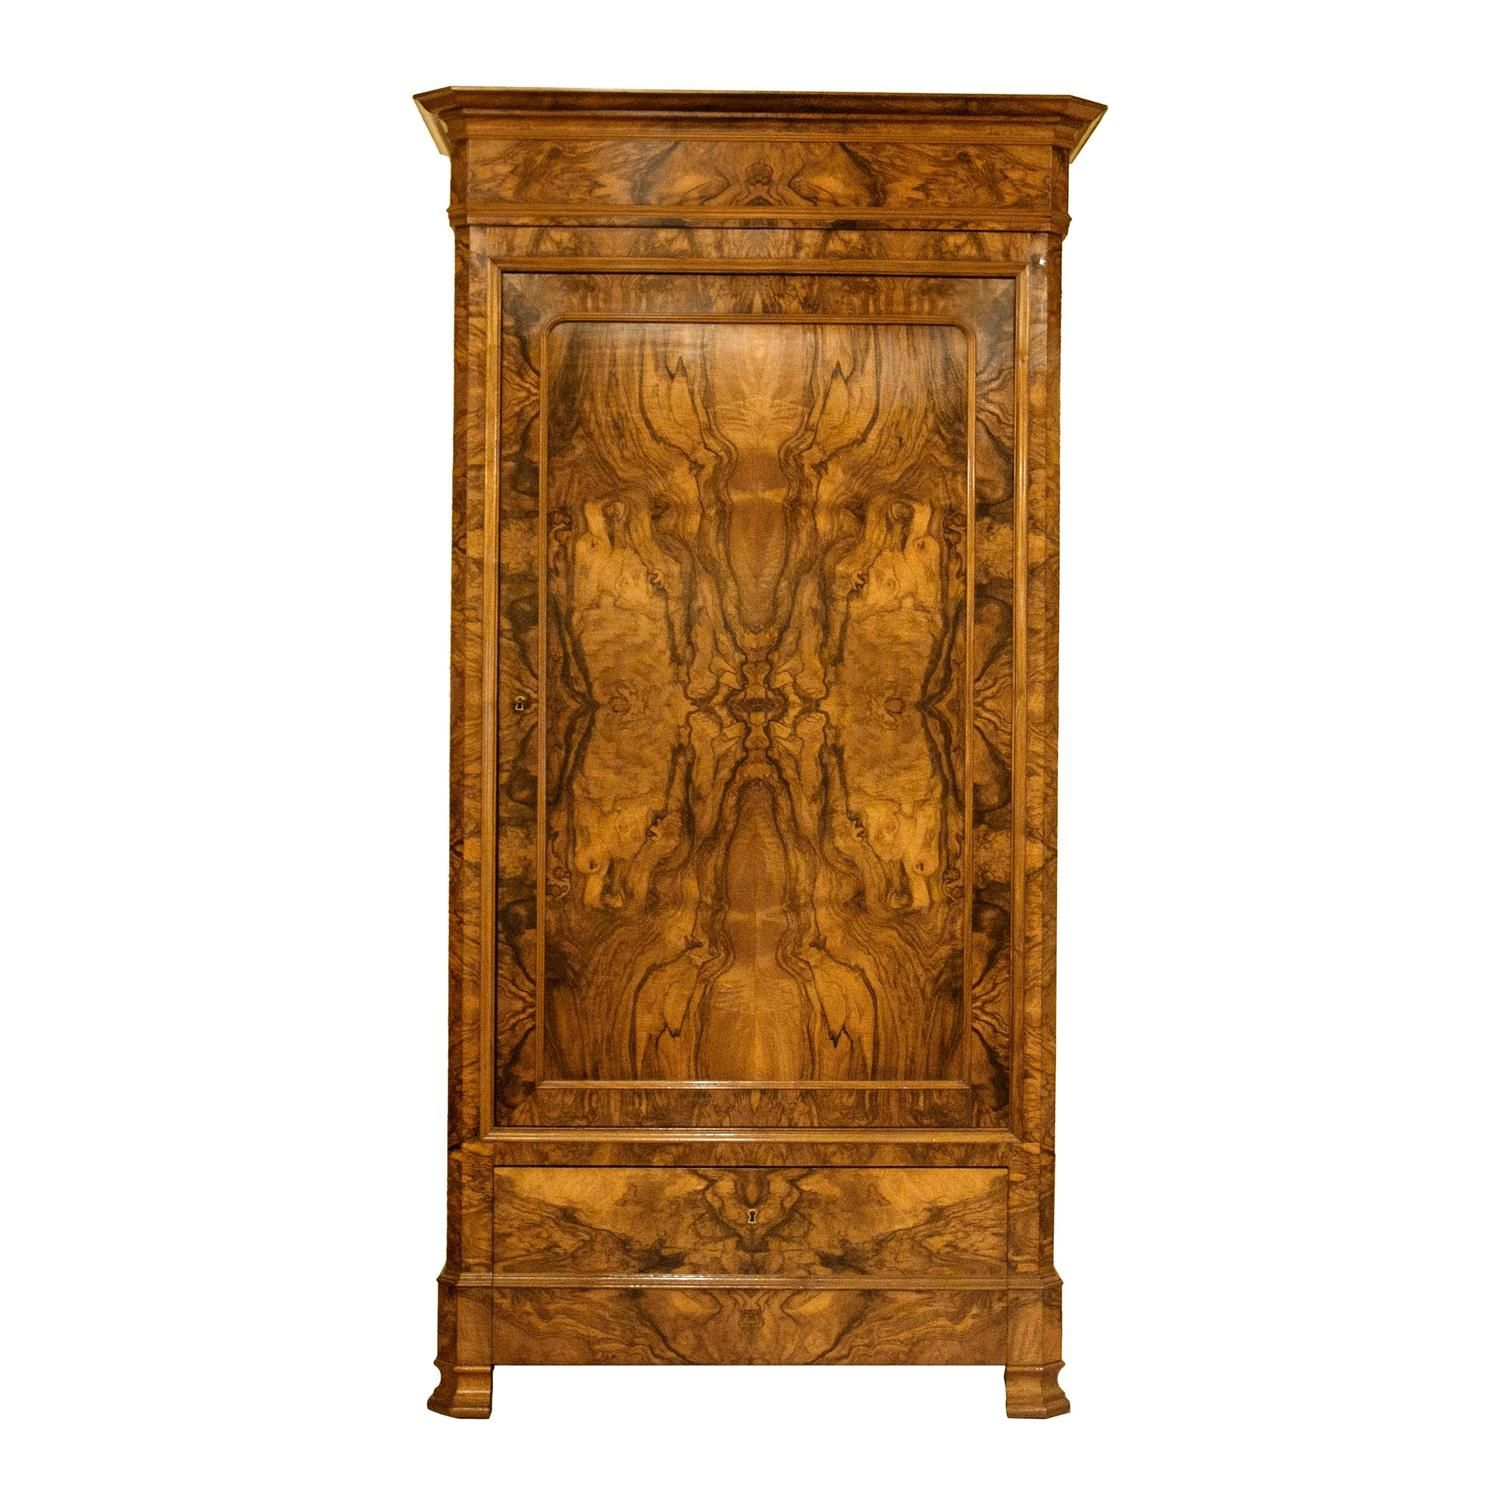 Period Louis Philippe Bonnetiere Or Armoire Of Bookmatched Burl